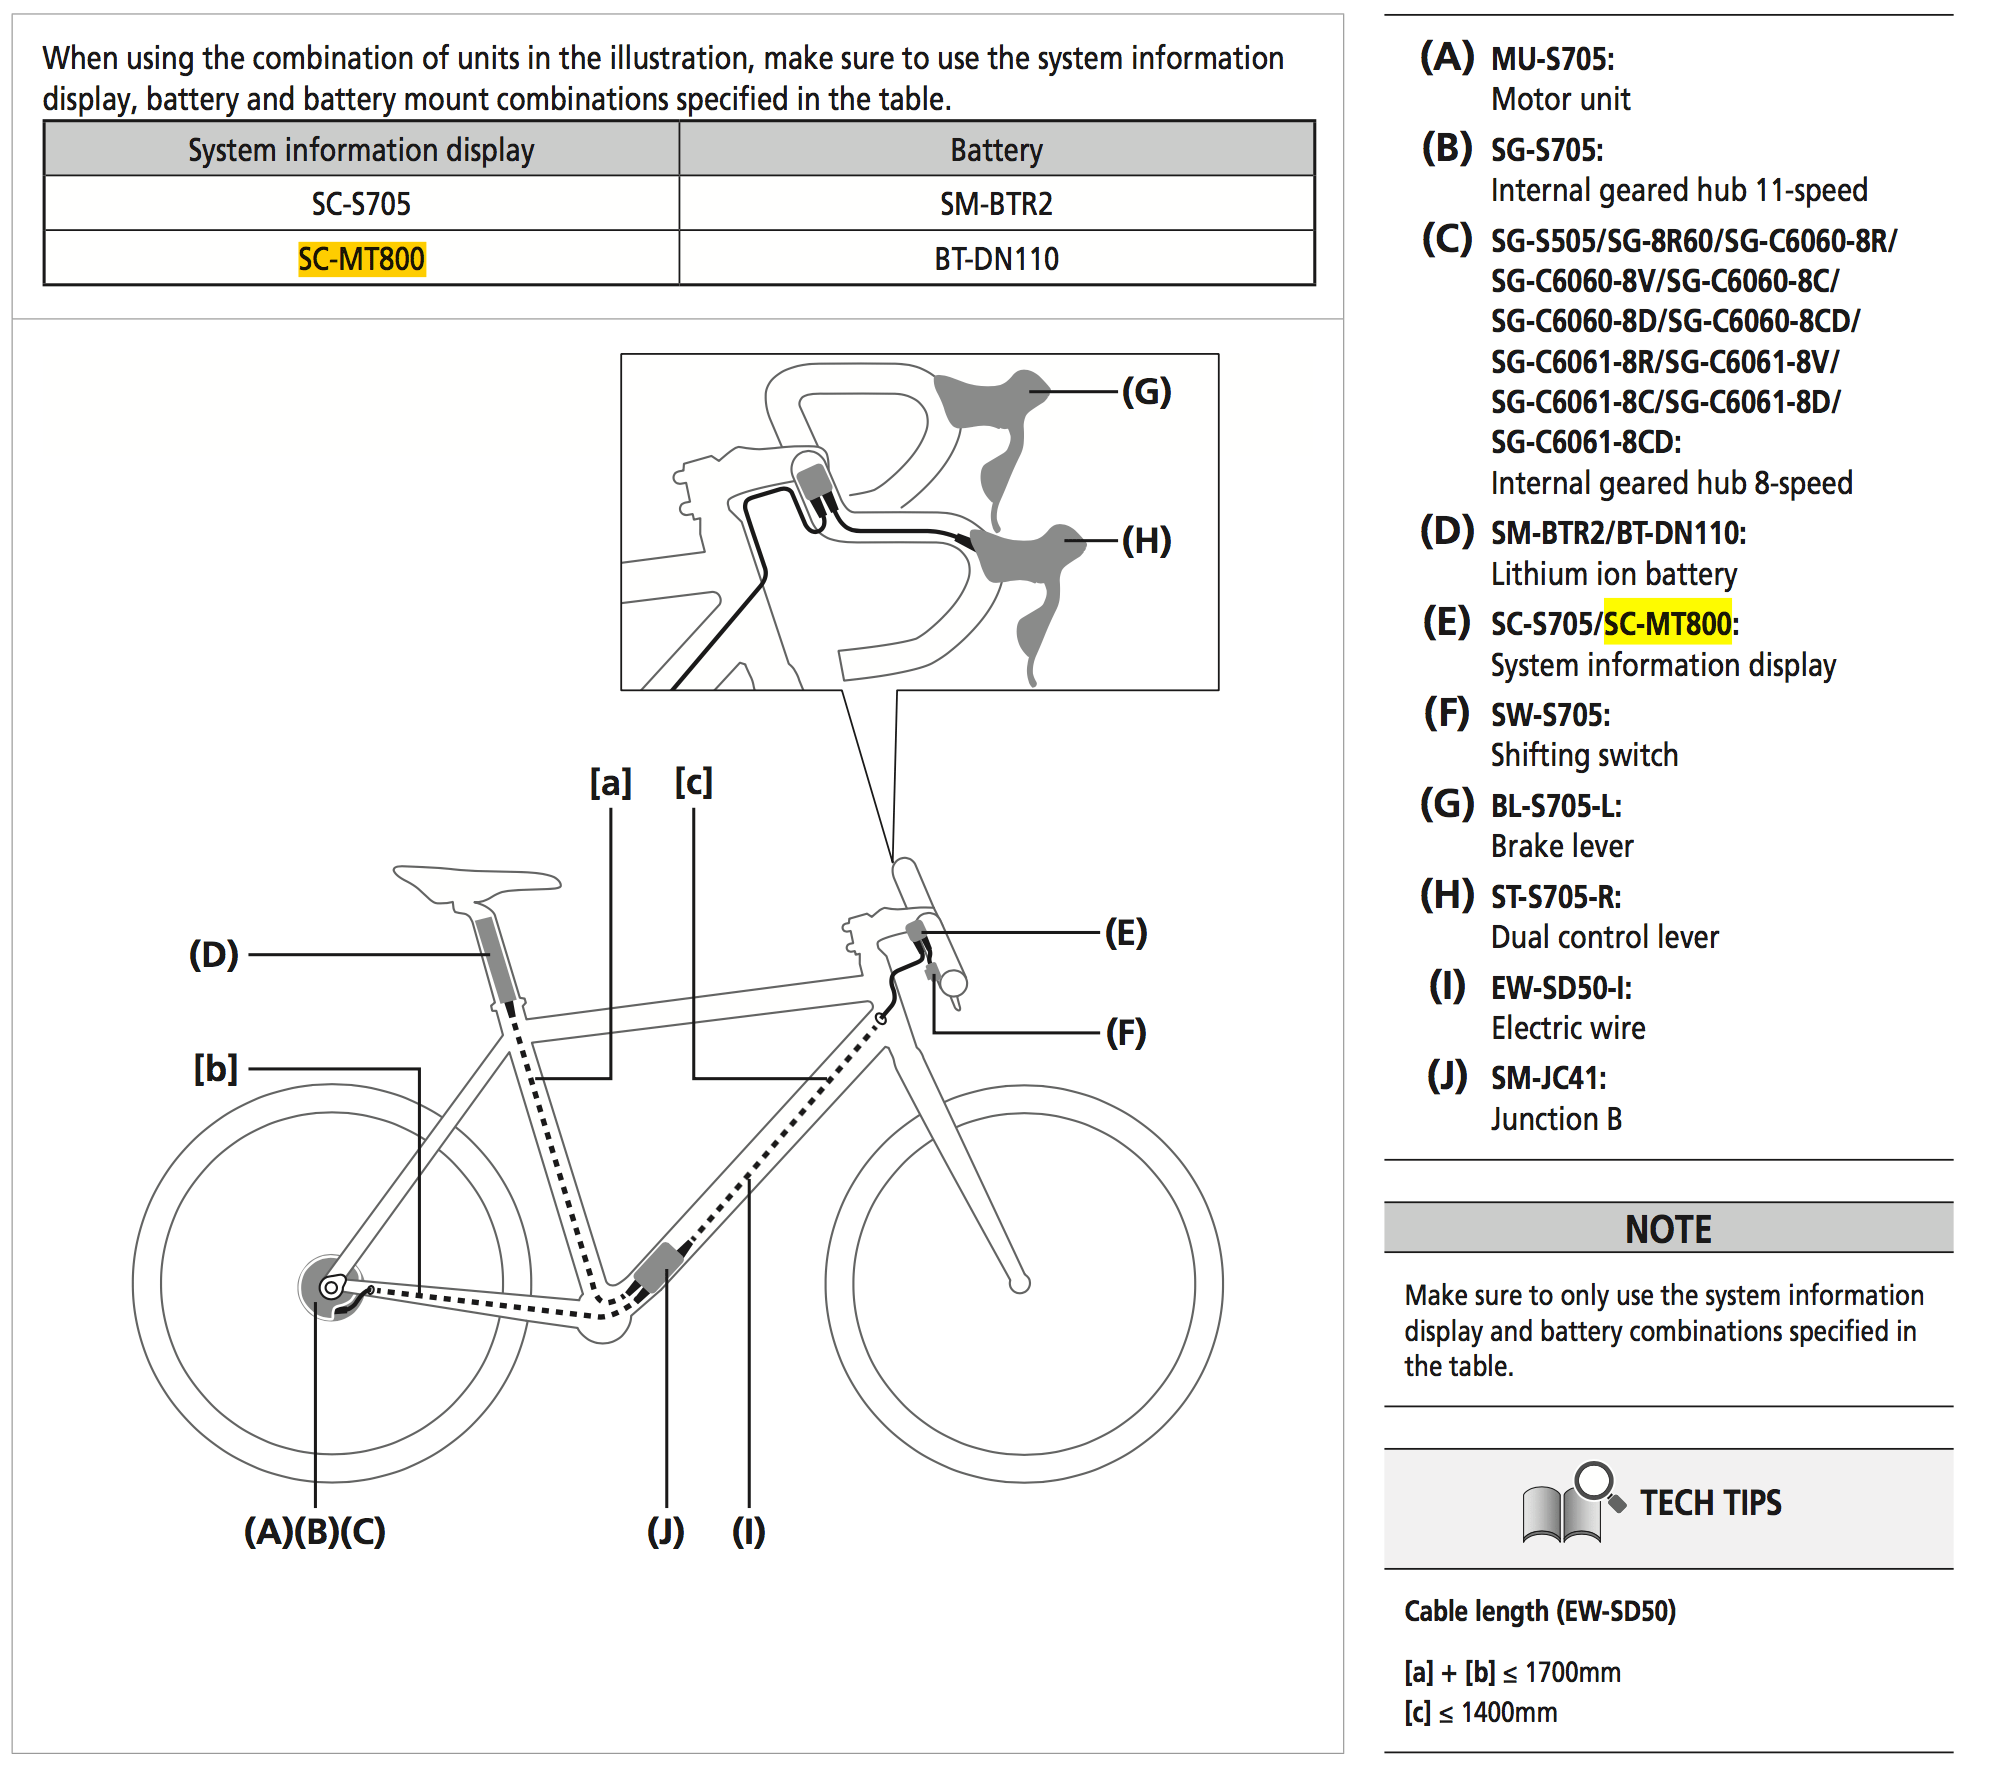 wiring diagram ultegra di2 free download wiring diagram xwiaw rh xwiaw us ultegra di2 wiring diagram ultegra di2 wiring diagram